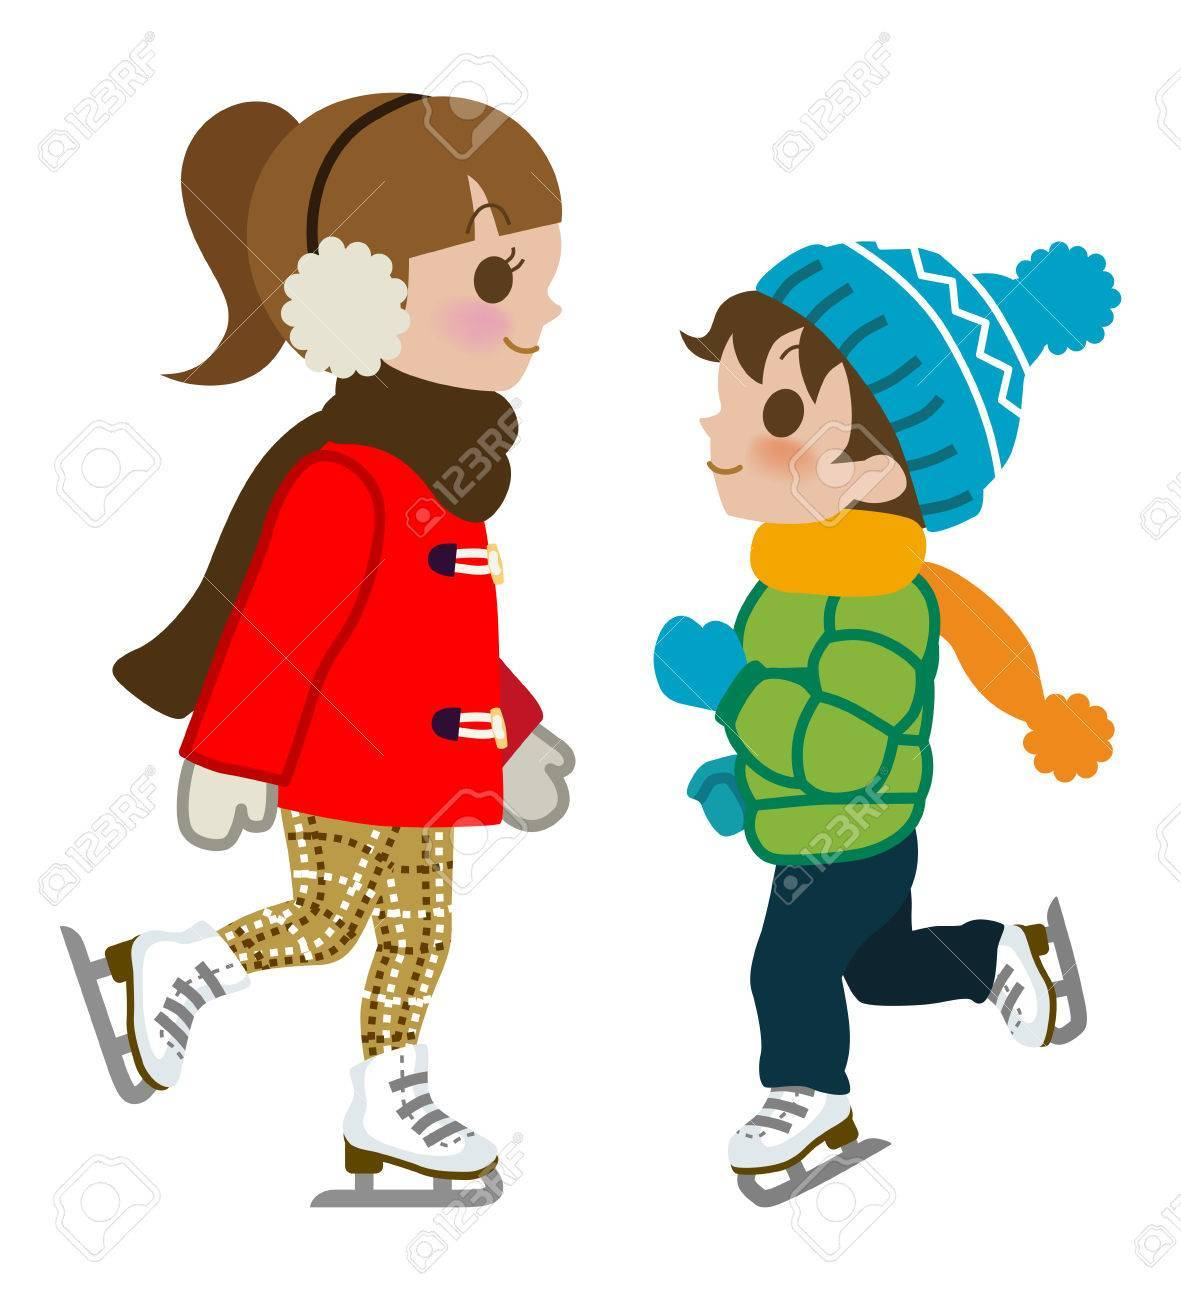 Kids ice skating clipart 7 » Clipart Portal.